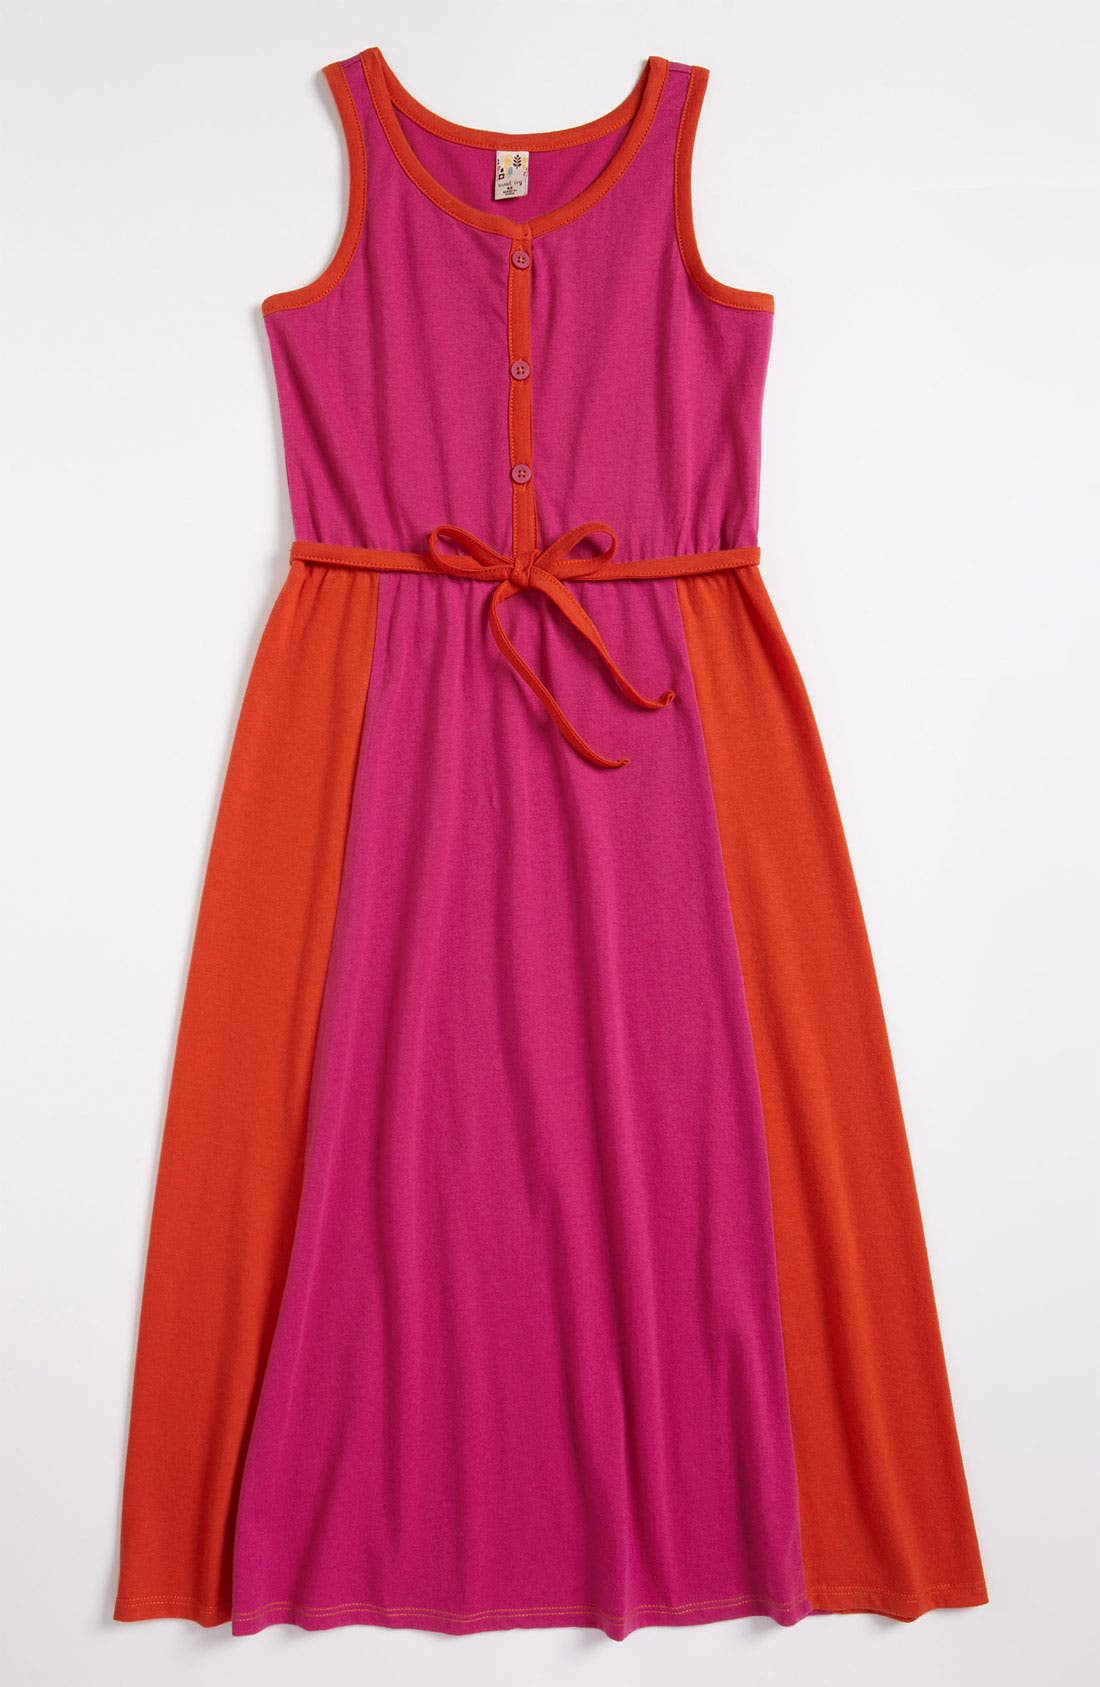 Alternate Image 1 Selected - Sweet Ivy 'Alexis' Maxi Dress (Little Girls)